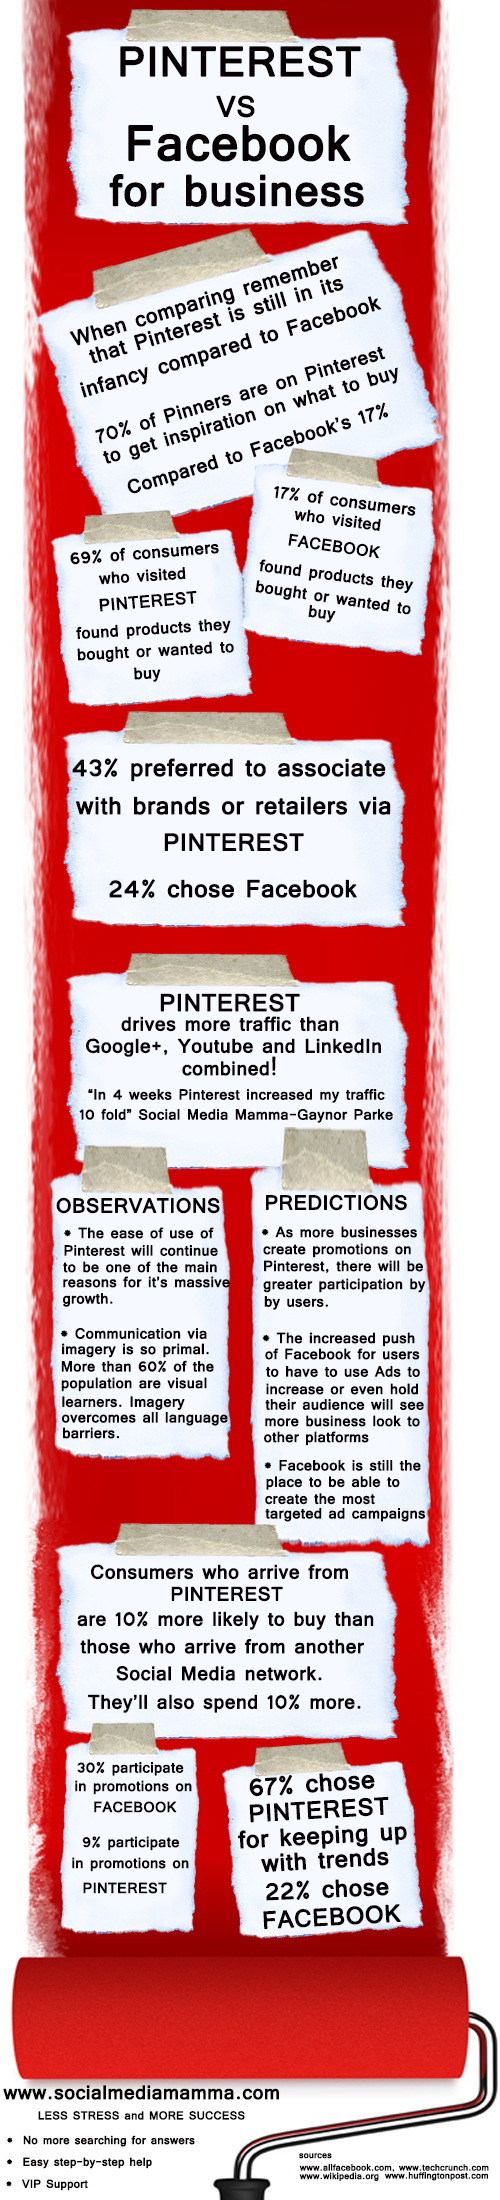 Pinterest vs. FaceBook para empresas